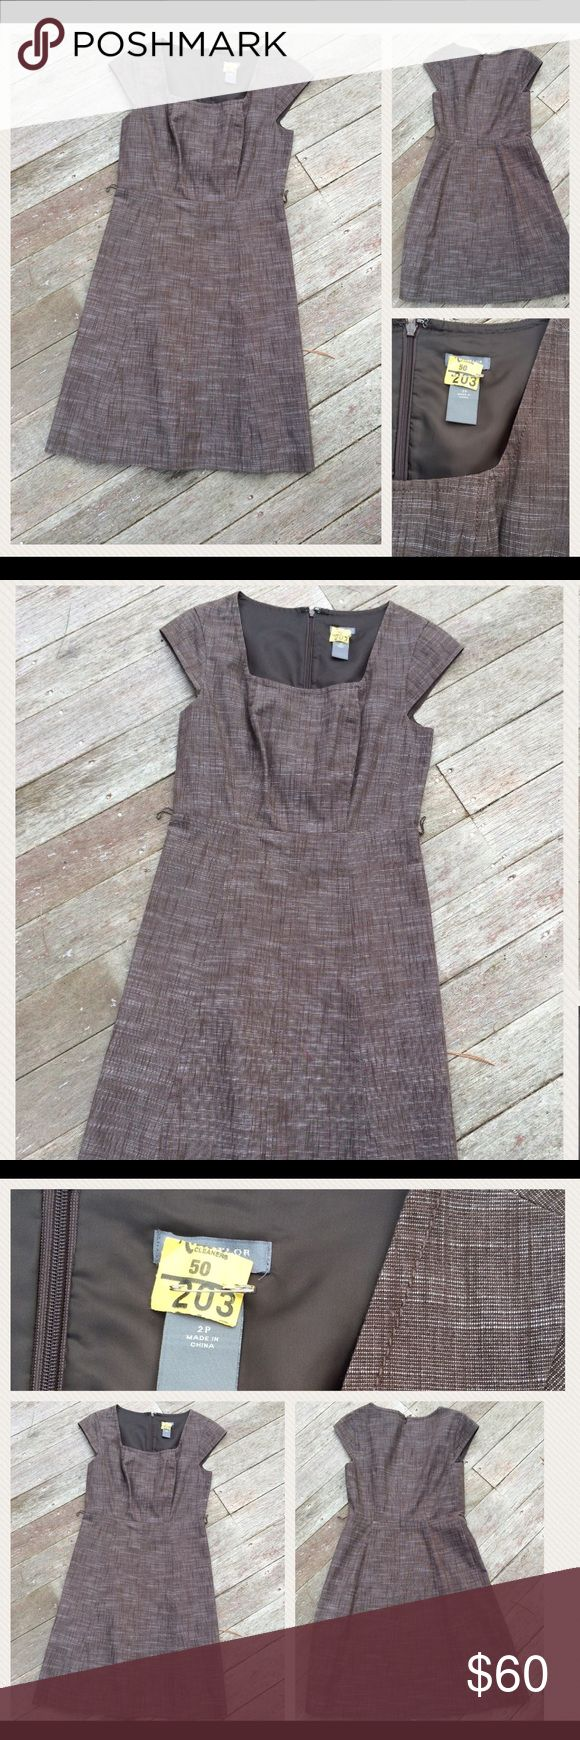 """Ann Taylor Classic Gray Short Sleeve Dress 2P In perfect, flawless, like new condition. Smoke and pet free home. Size 2 Petite Ann Taylor Gray Dress Approximate Measurements: 27"""" armpit to hem 14-1/2"""" waist laying flat  Classic, versatile, like new dress. All reasonable offers considered. Ann Taylor Dresses"""